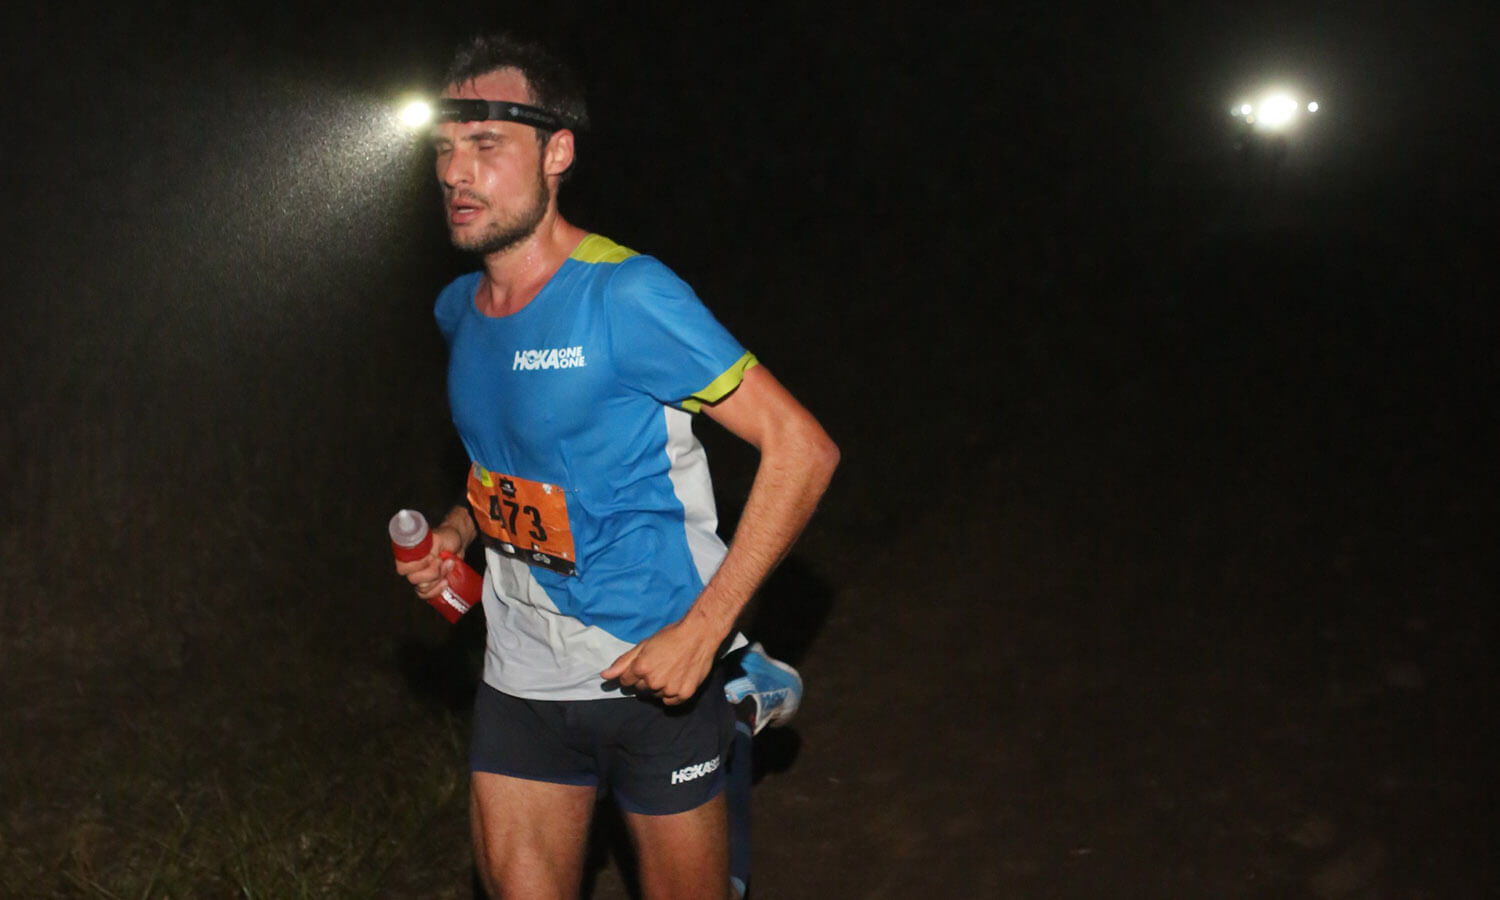 HOKA athlete Thibaut Garrivier starts the race with a headtorch